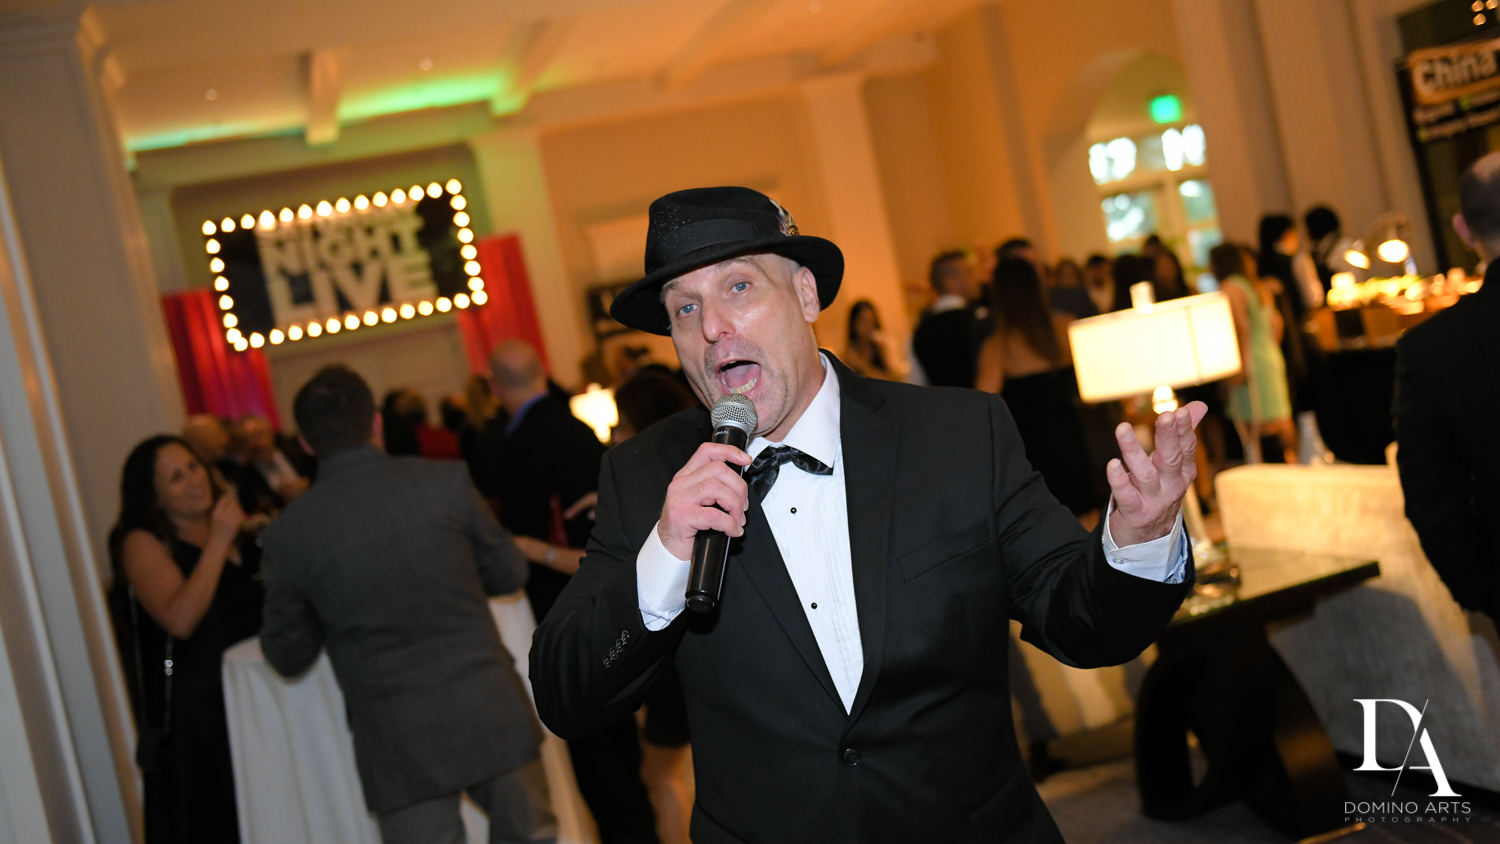 impersonators at New York Theme Bat Mitzvah at Woodfield Country Club, Boca Raton by Domino Arts Photography